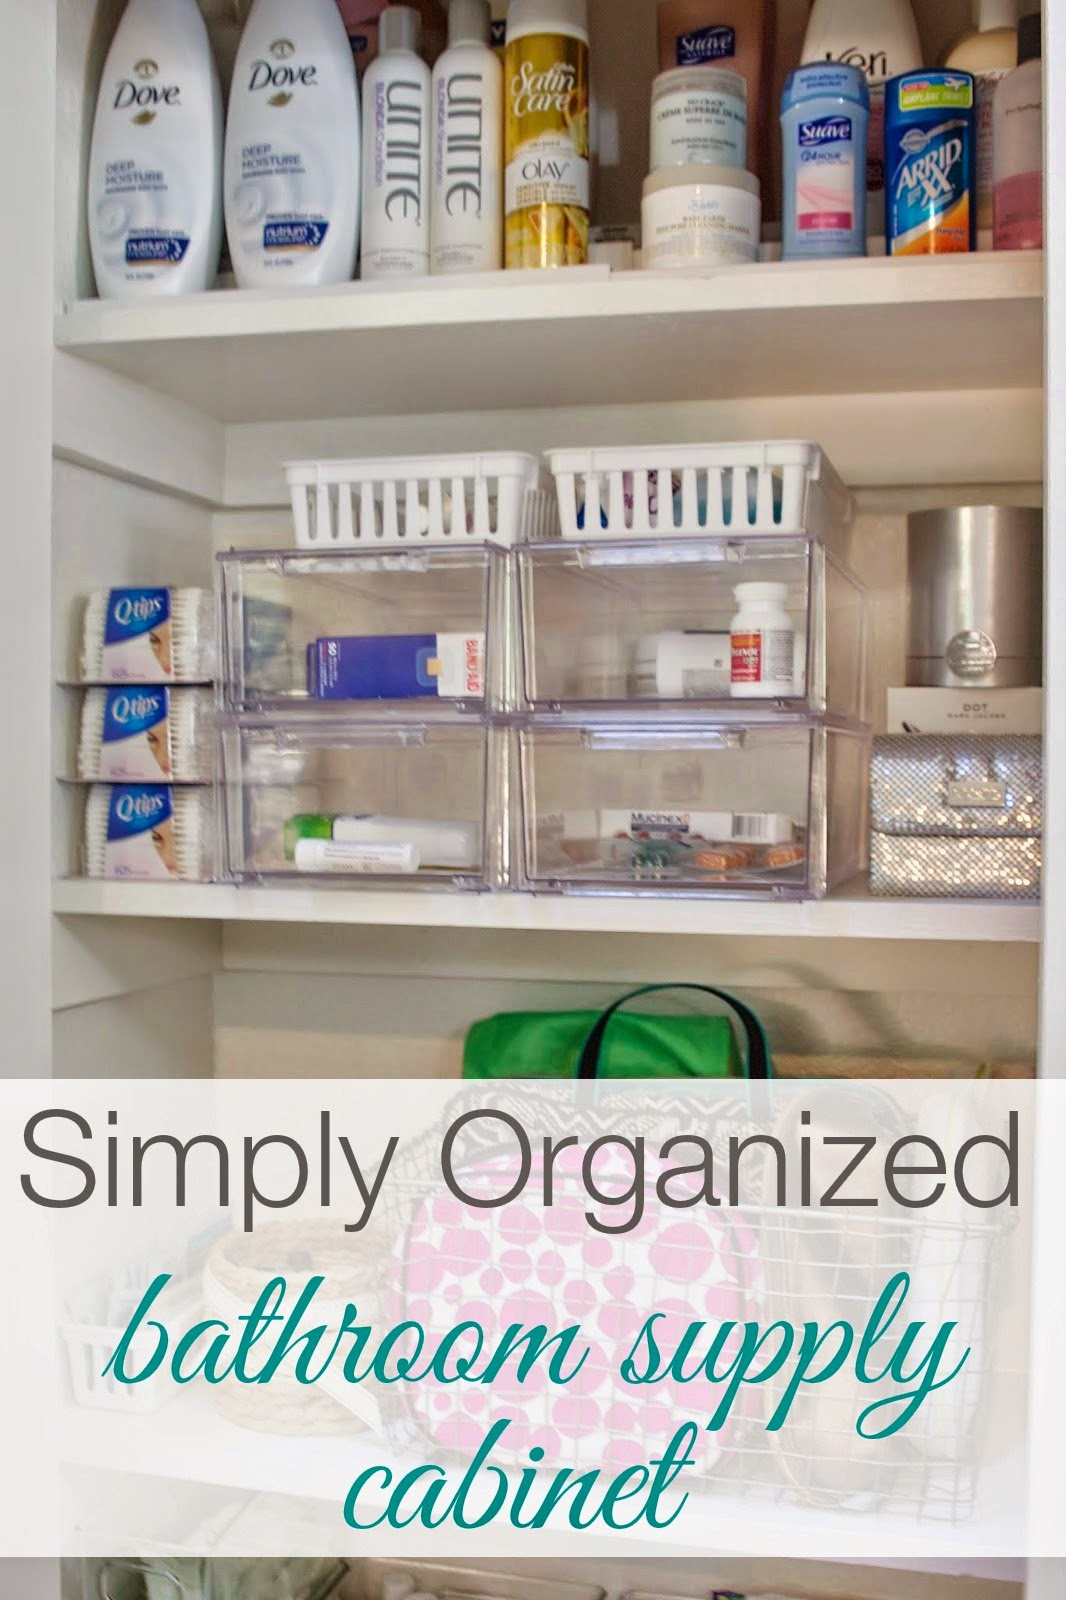 Simply Organized Organized Bathroom Supply Cabinet